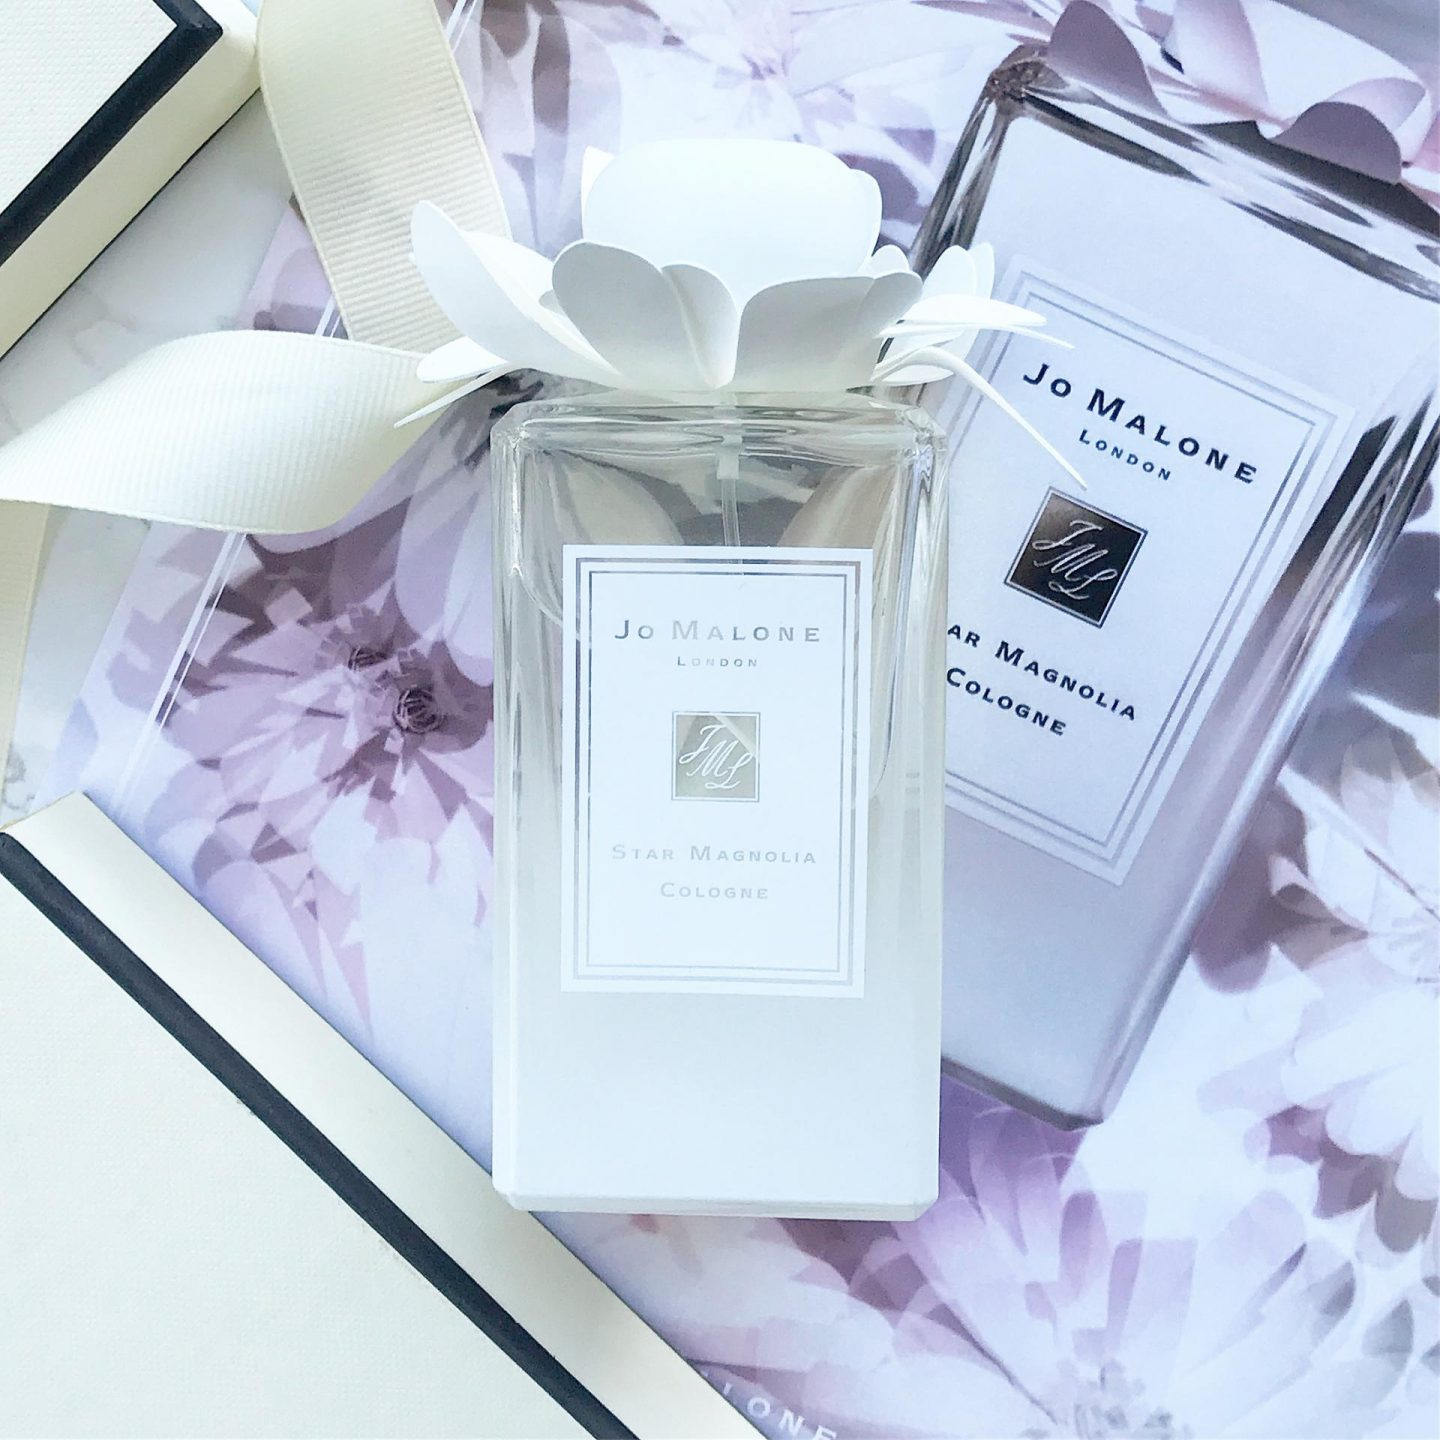 Jo Malone Star Magnolia Perfume and Hair Mist